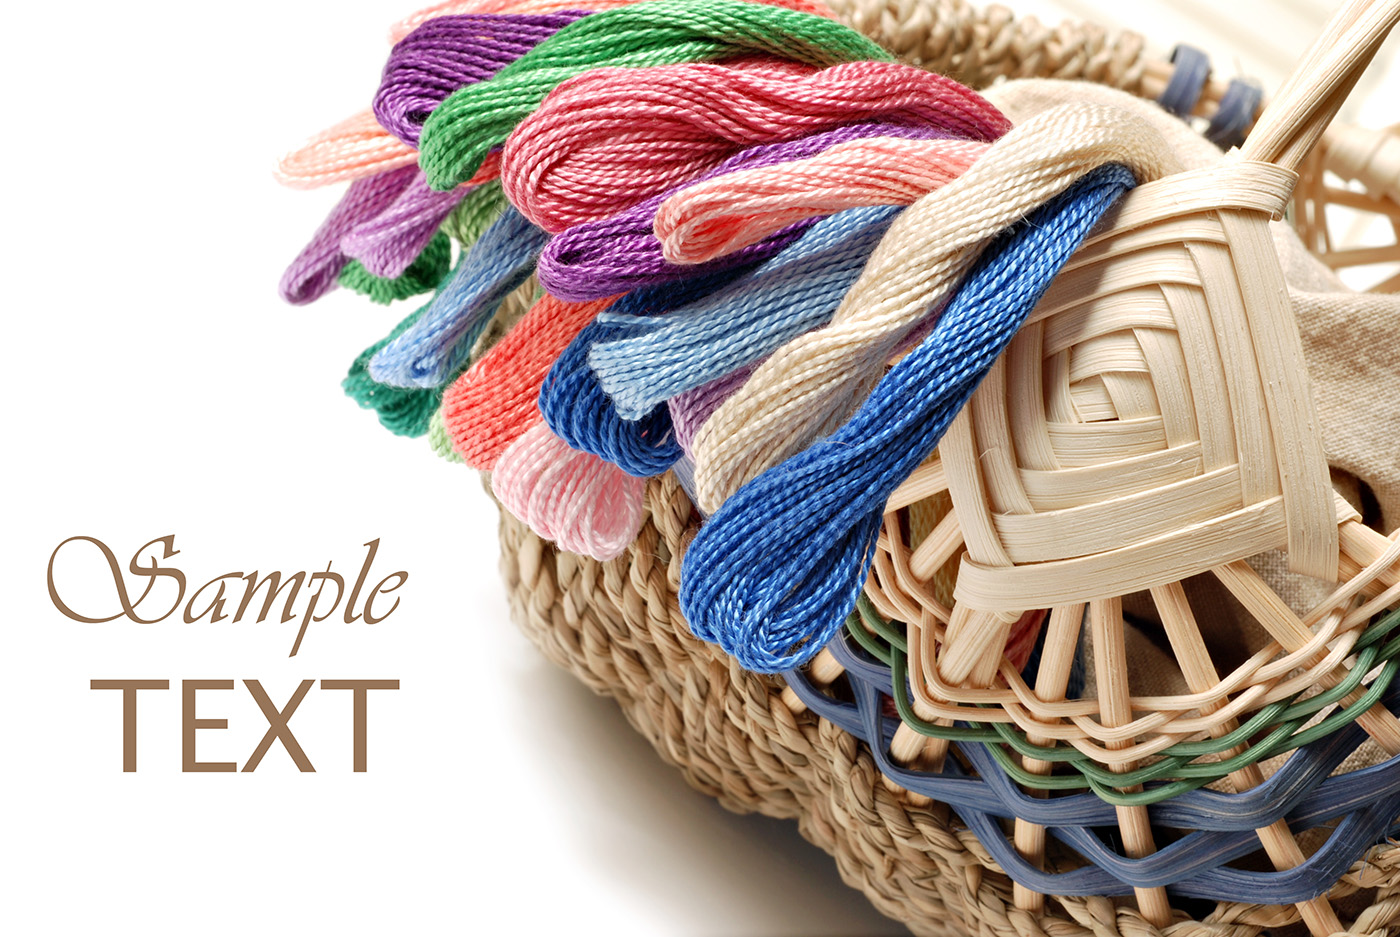 Basket of yarn debris 50412